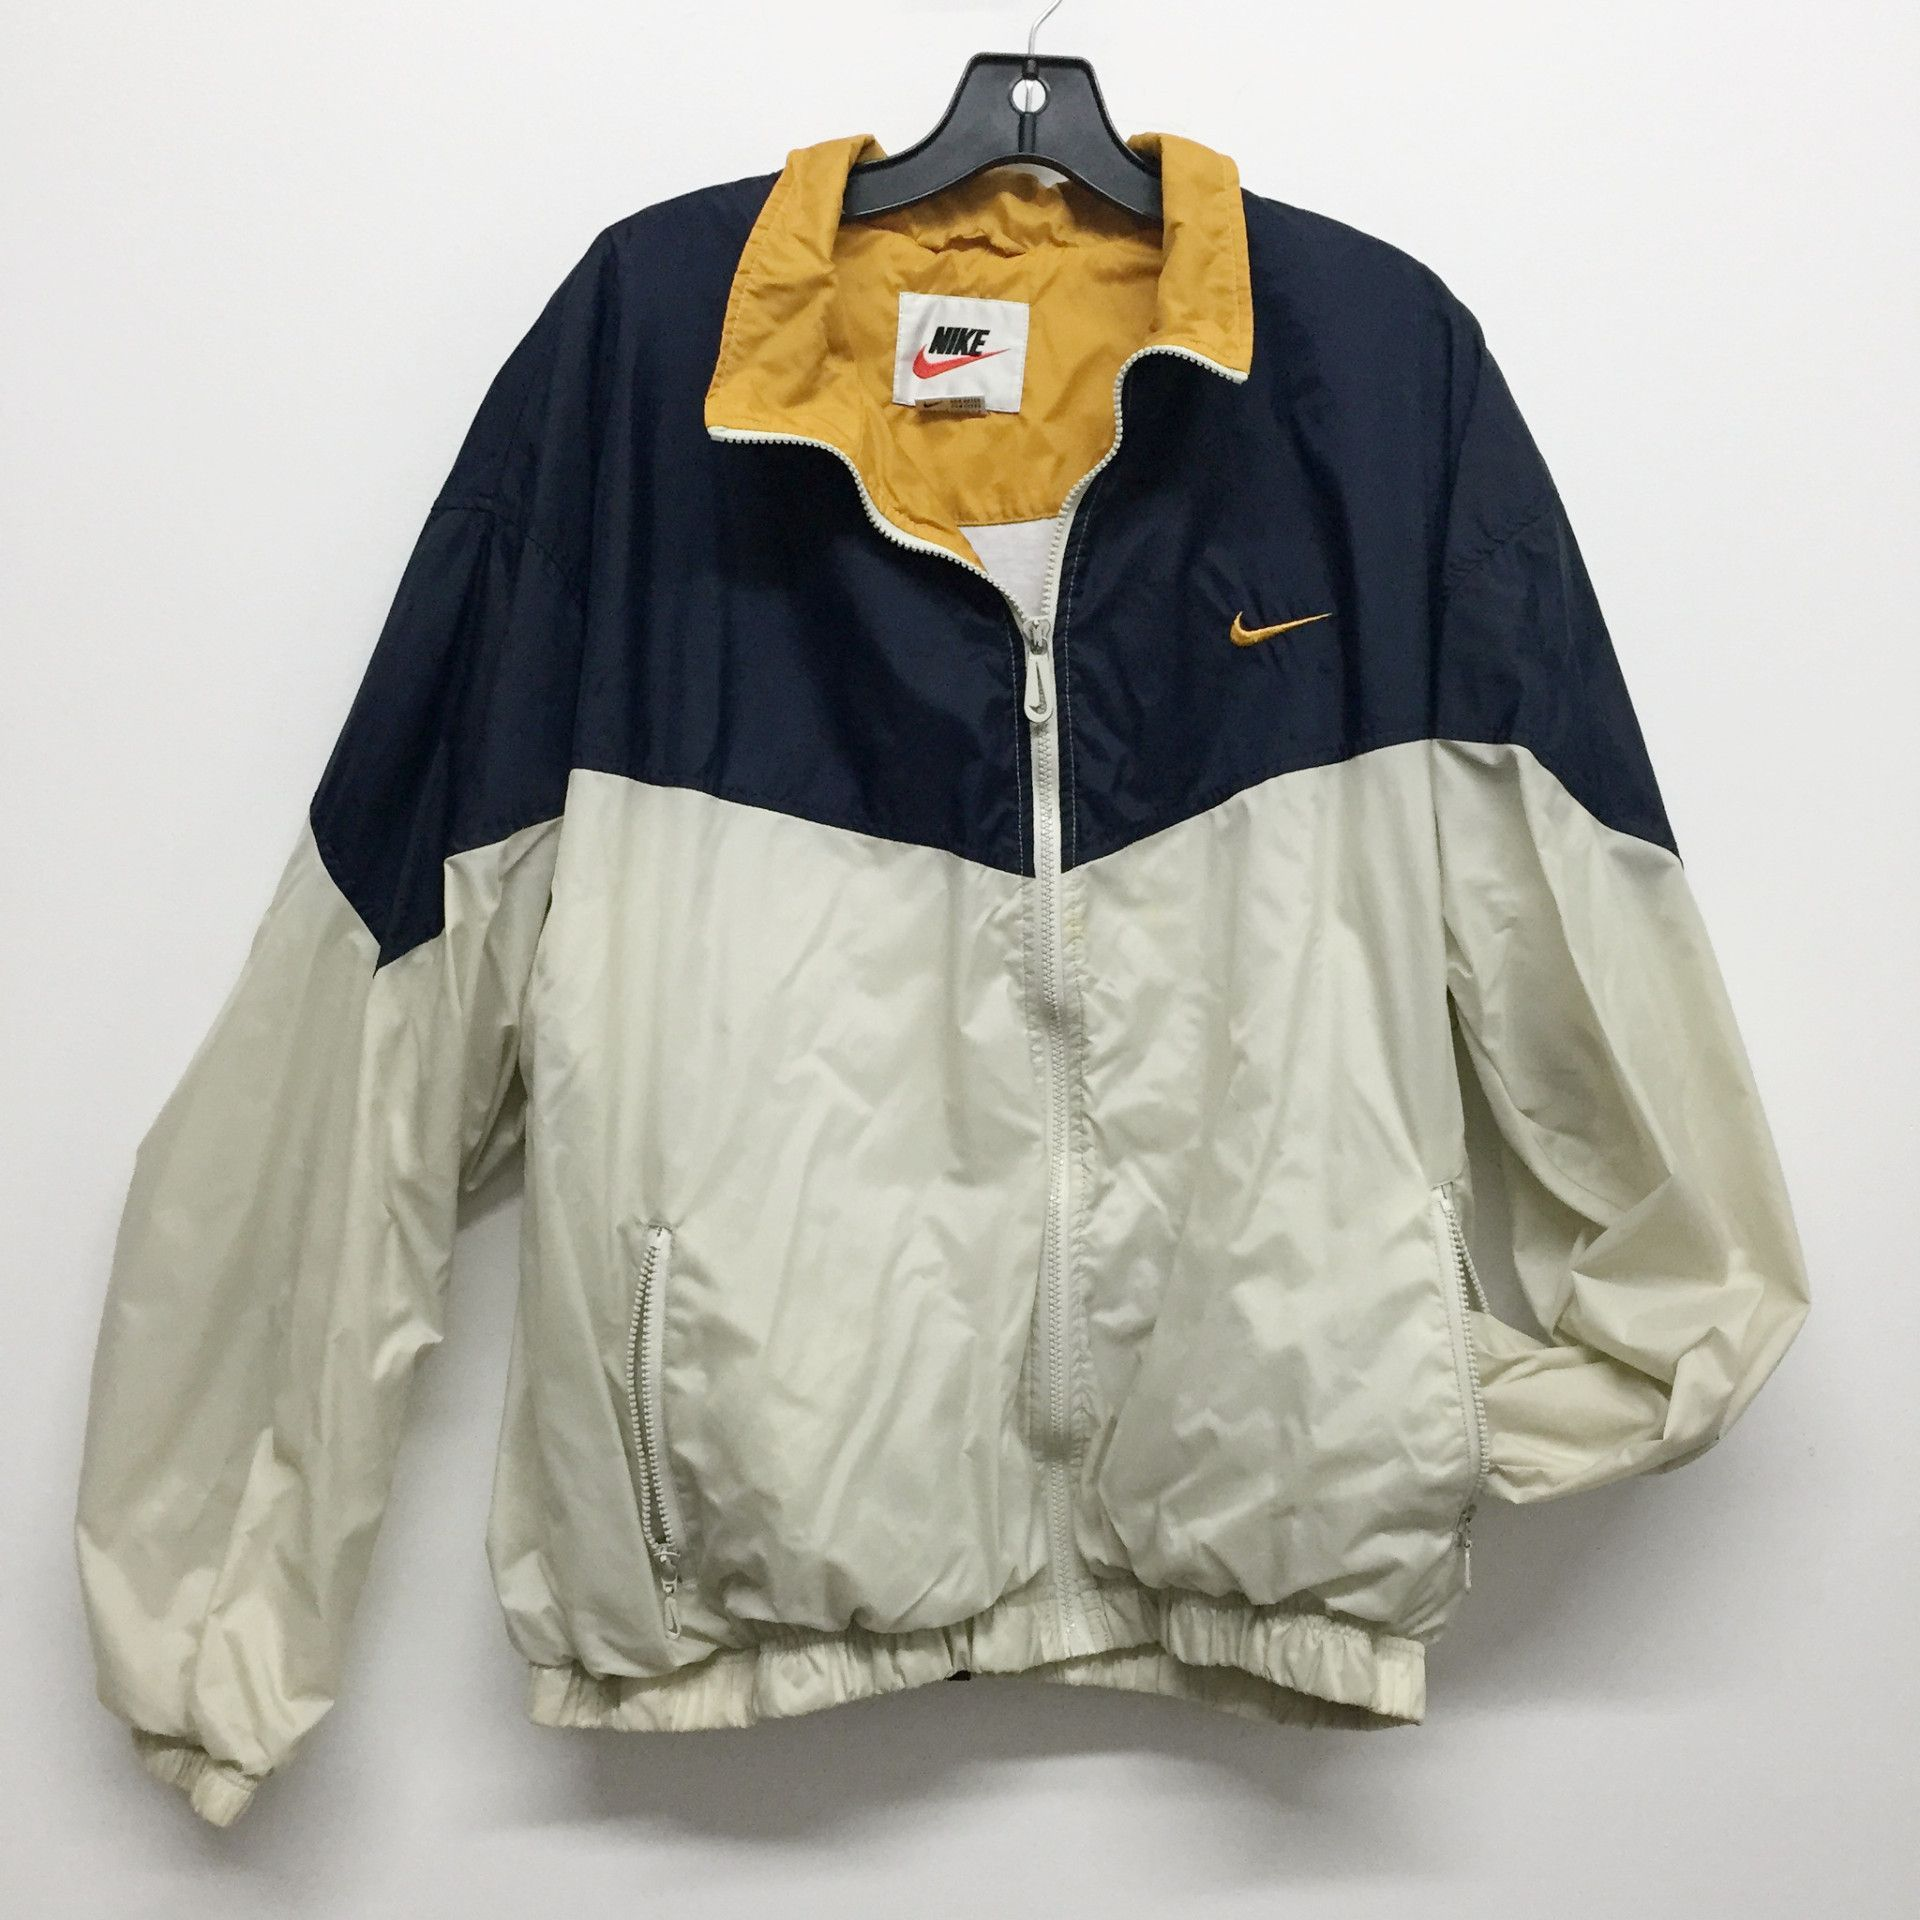 retro nike windbreaker - built in hood - two pockets - colors   white 2353c1f5b